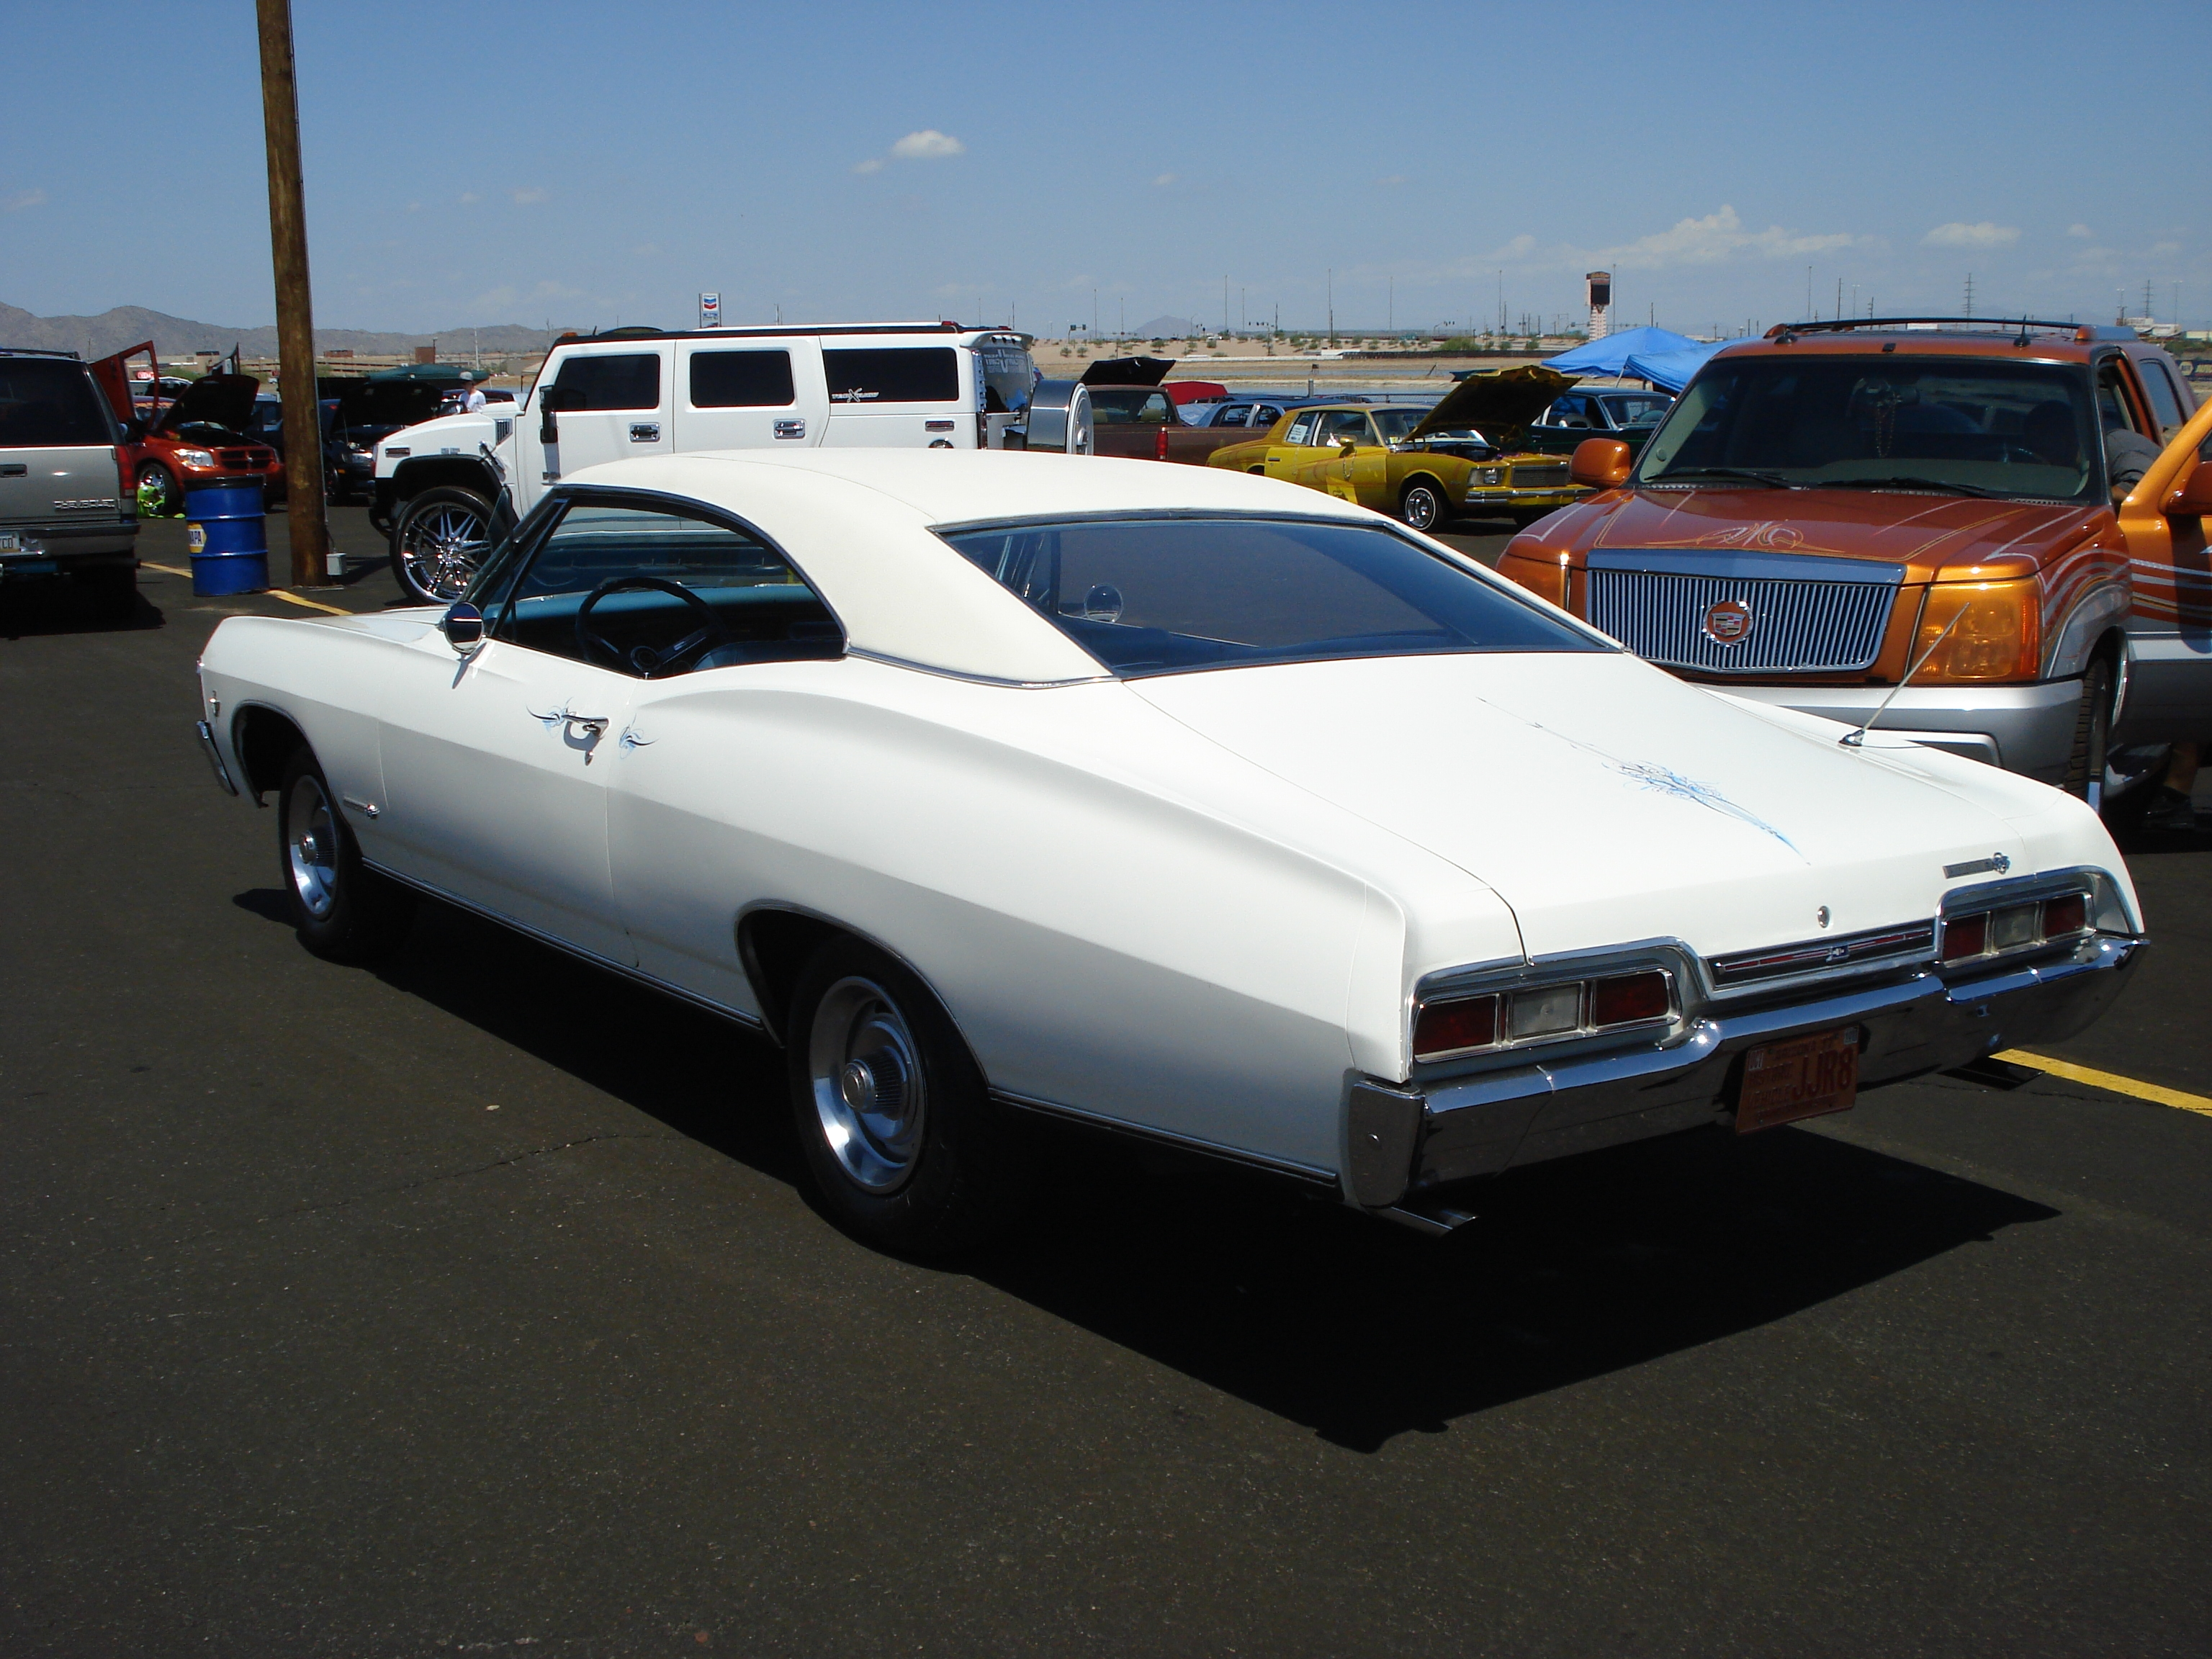 GRVDUBS 1967 Chevrolet Impala Specs, Photos, Modification Info at ...